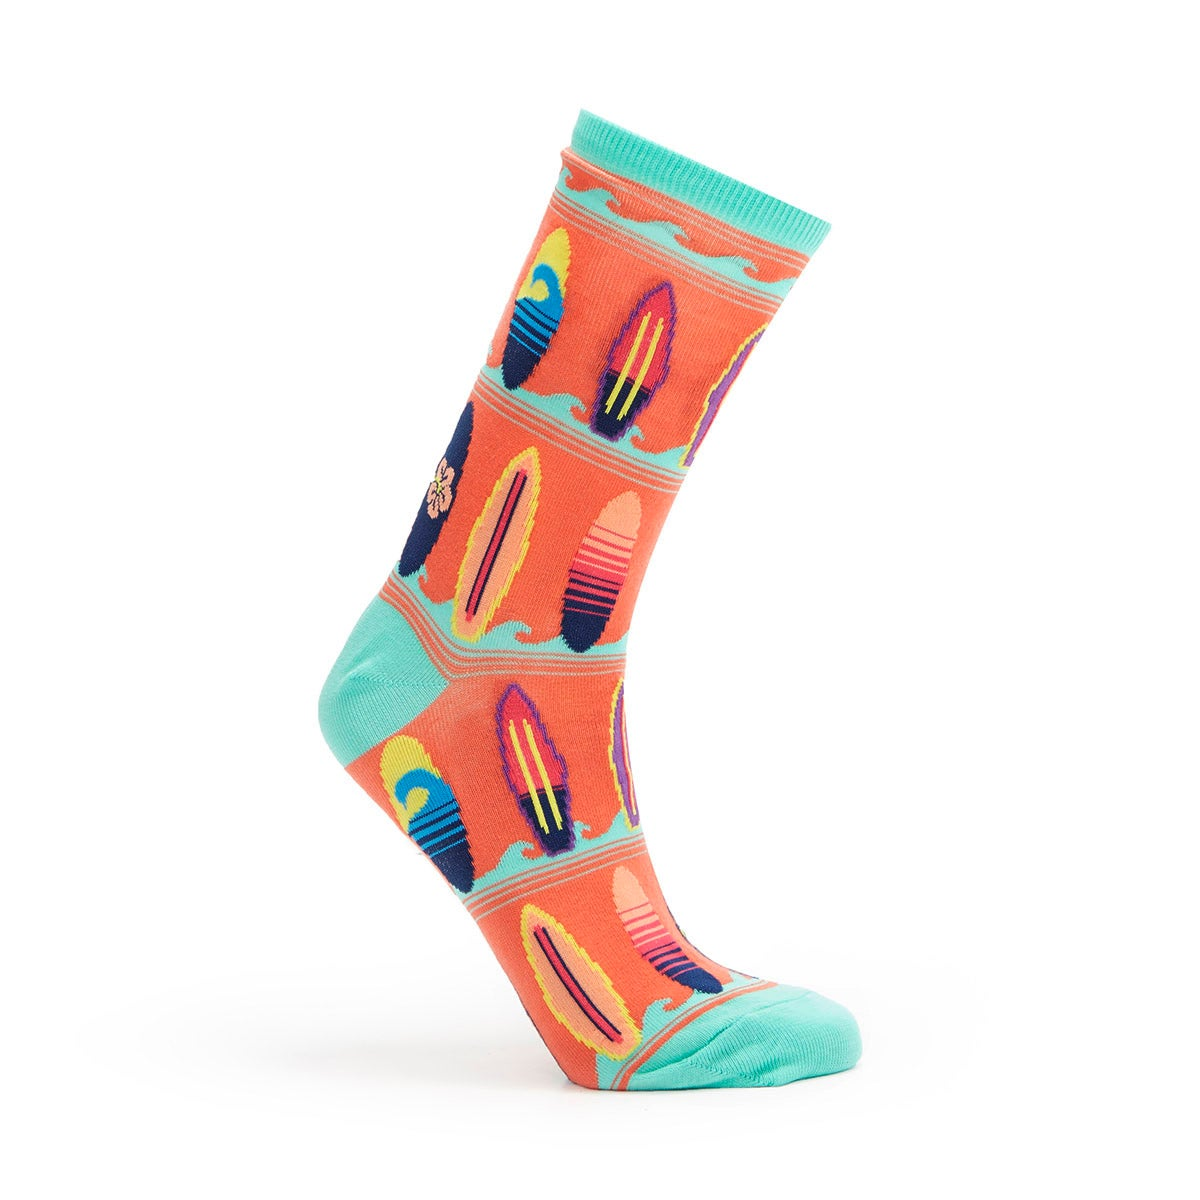 Lds Surfboards coral printed sock